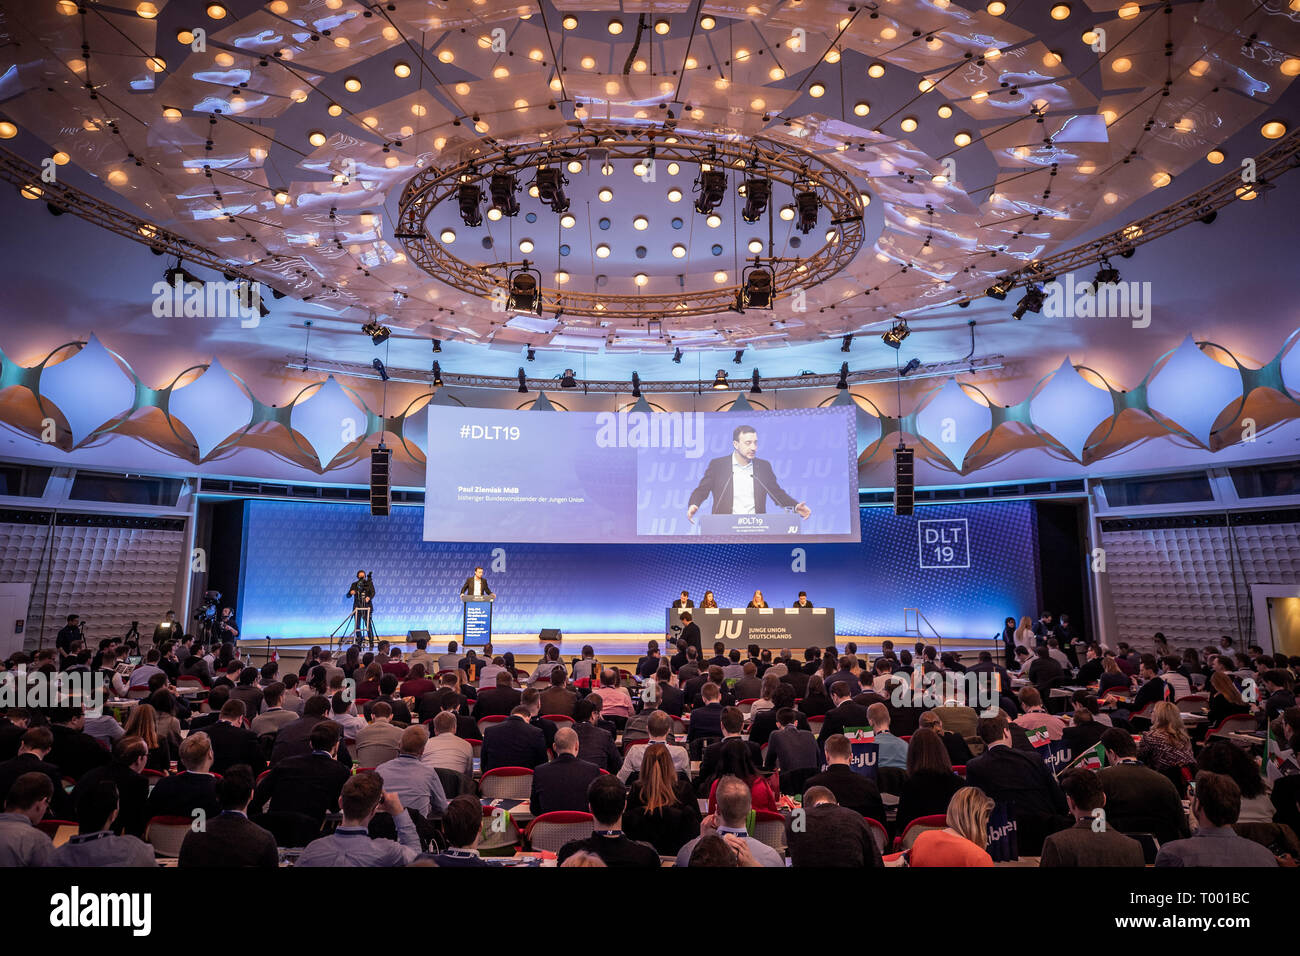 Berlin, Germany. 16th Mar, 2019. Paul Ziemiak, Secretary General of the CDU, speaks at the extraordinary Germany Day of the Young Union. Credit: Michael Kappeler/dpa/Alamy Live News Stock Photo